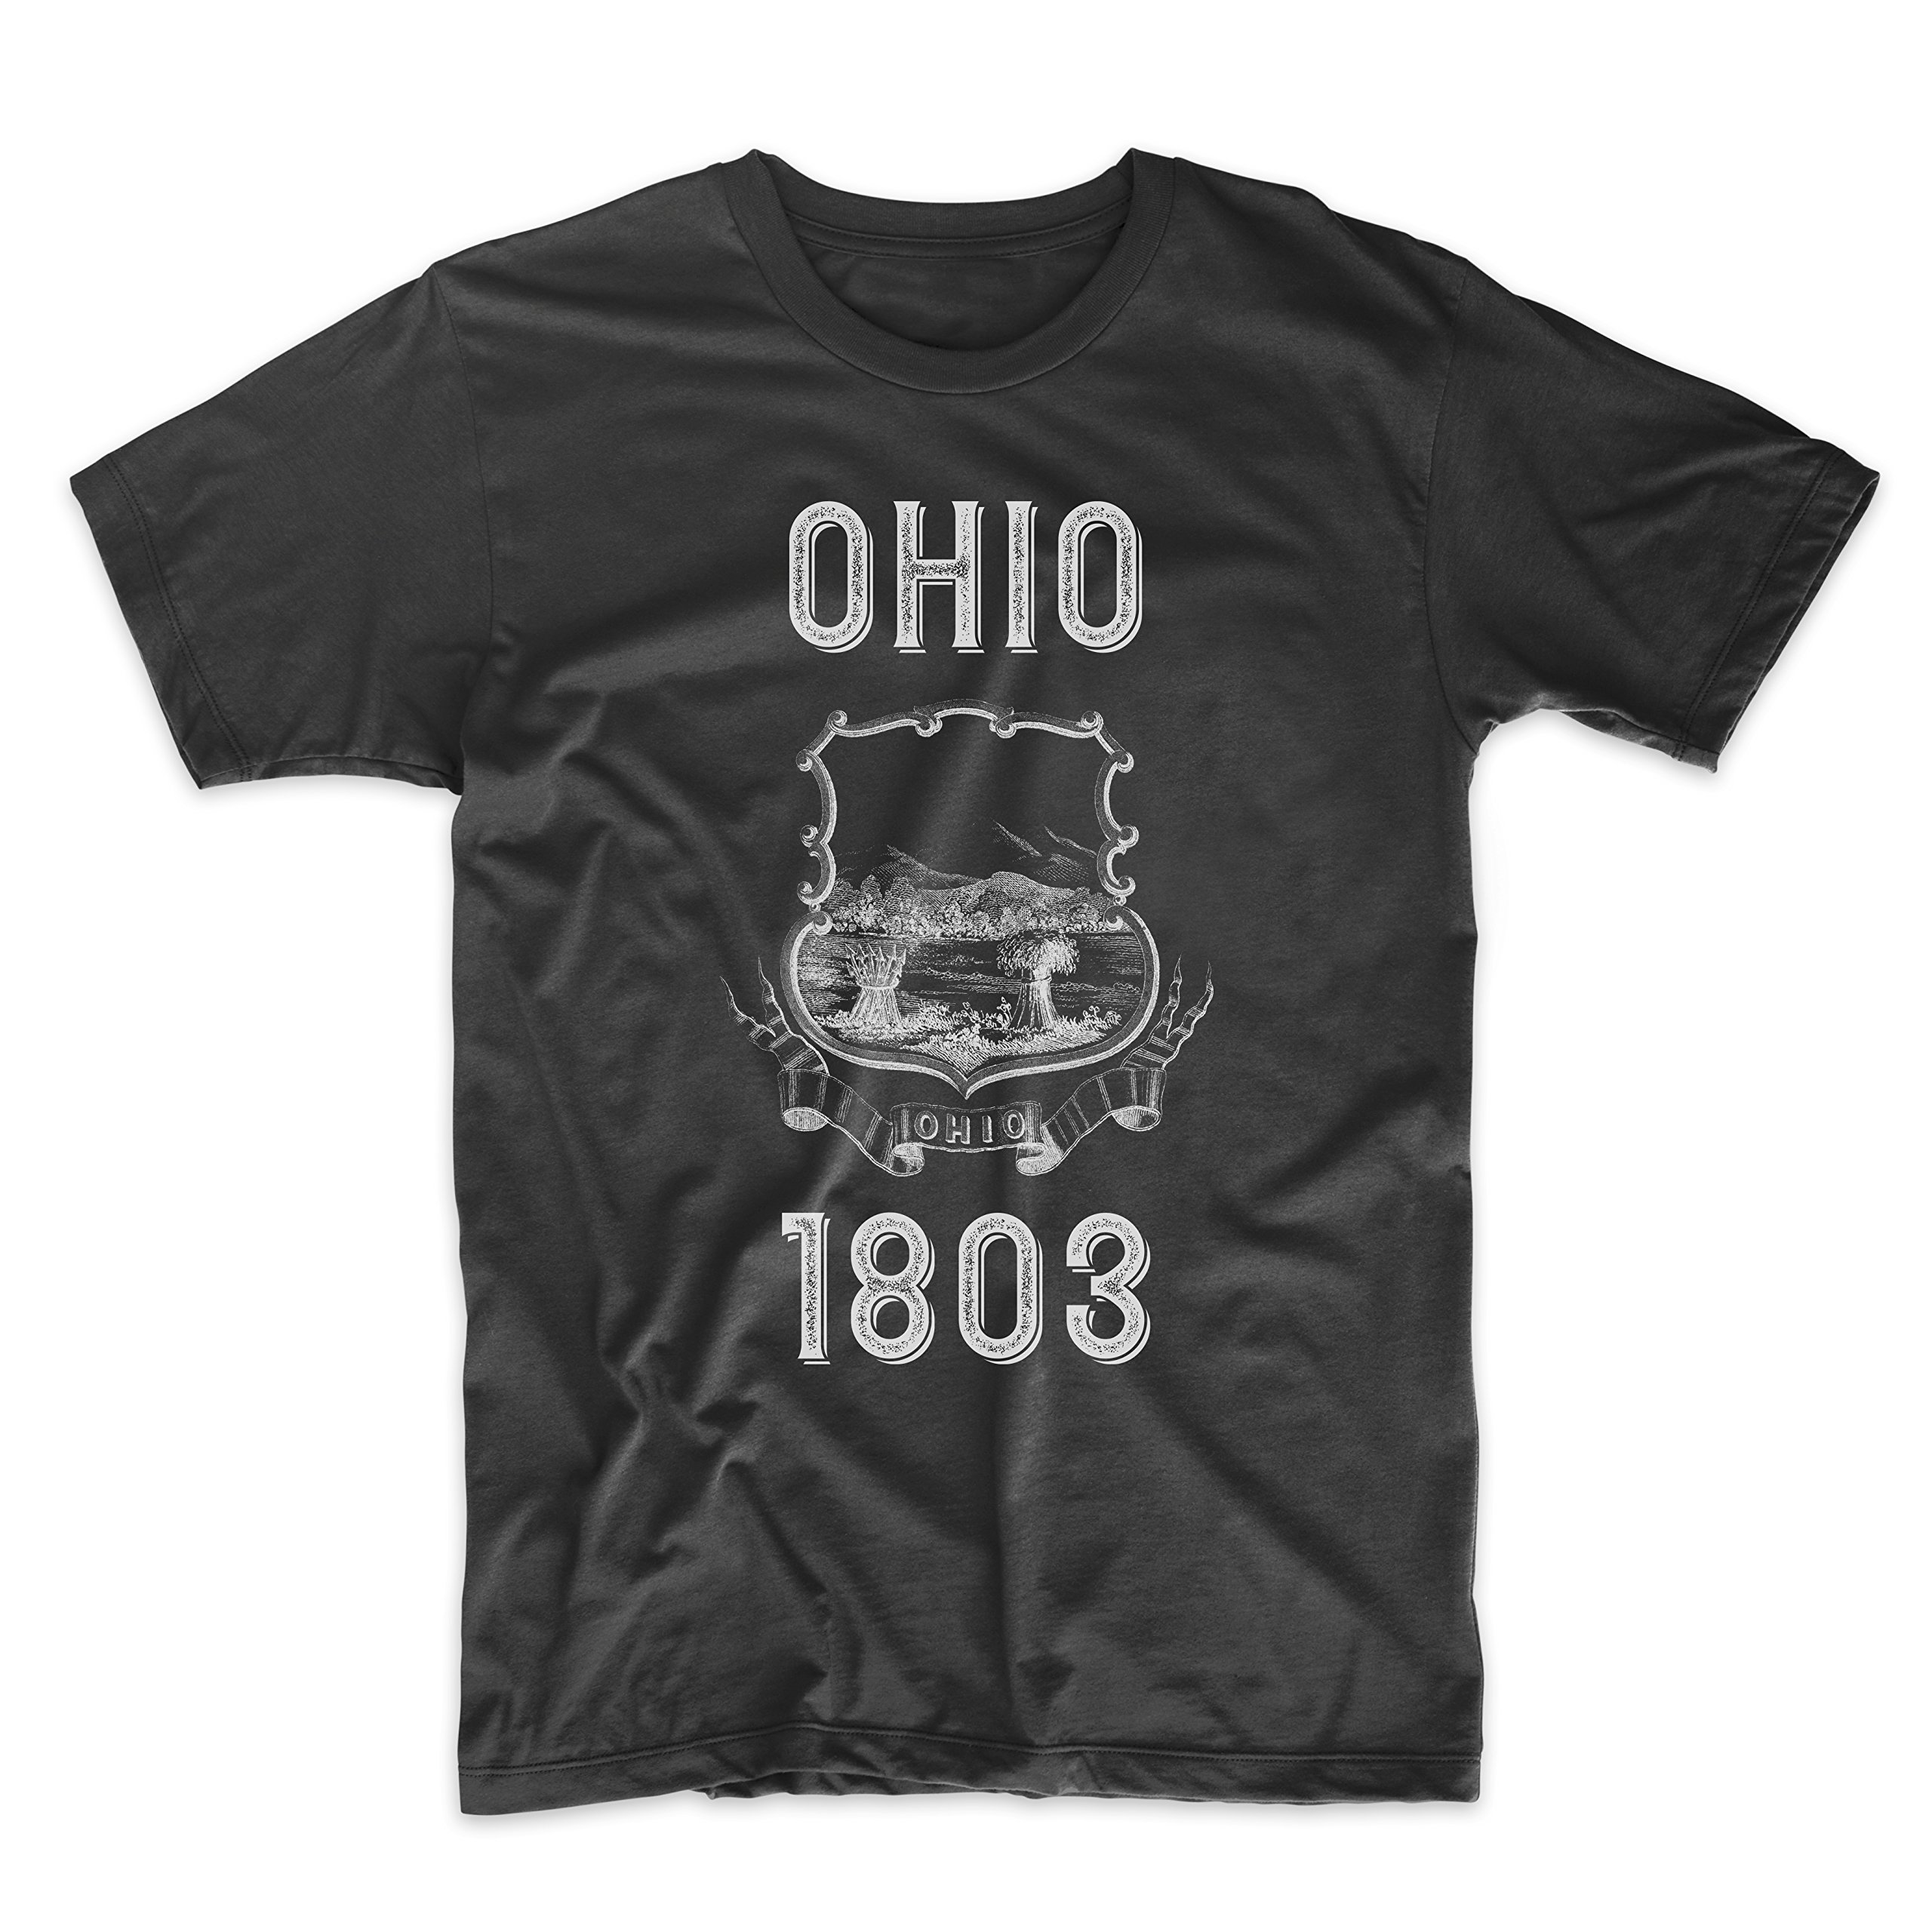 PatentPrints Ohio Coat of Arms T Shirt